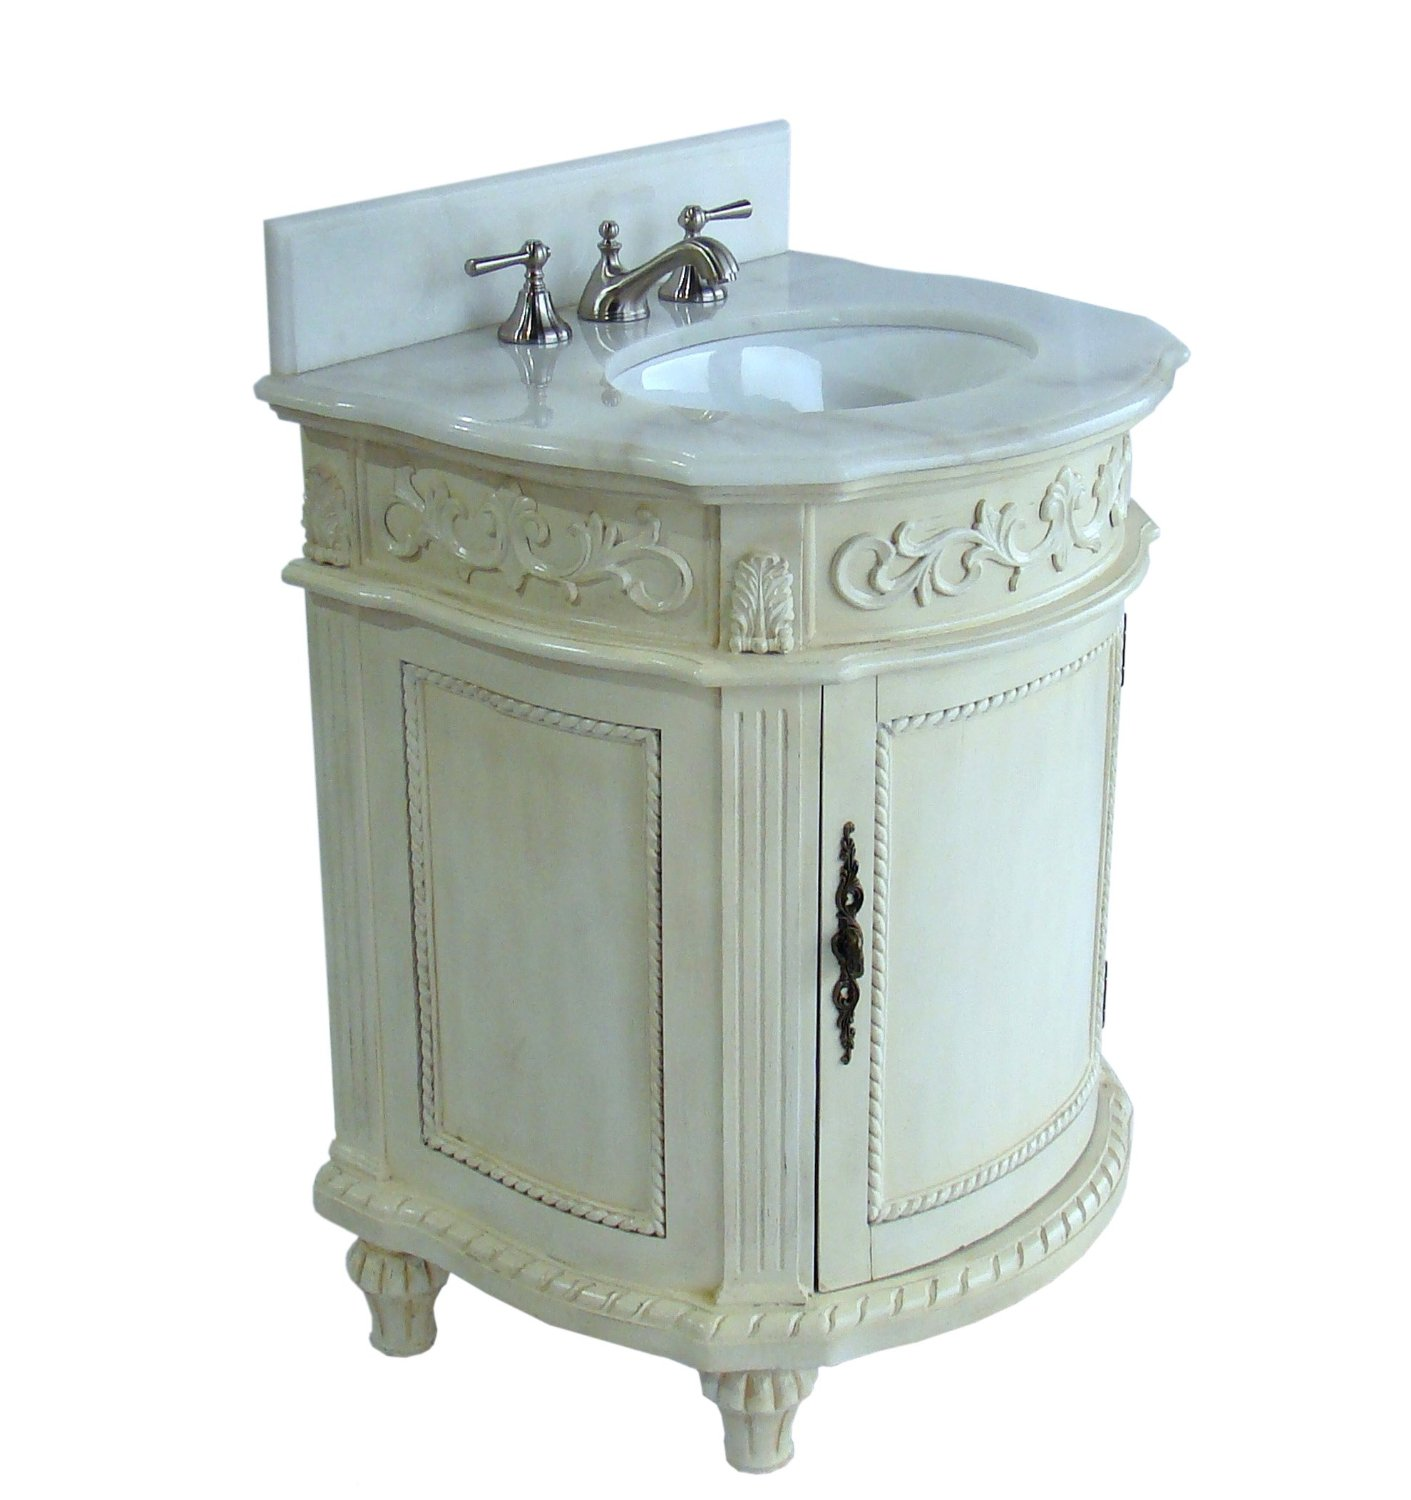 Petite Bathroom Vanity adelina 26 inch petite bathroom vanity antique white finish